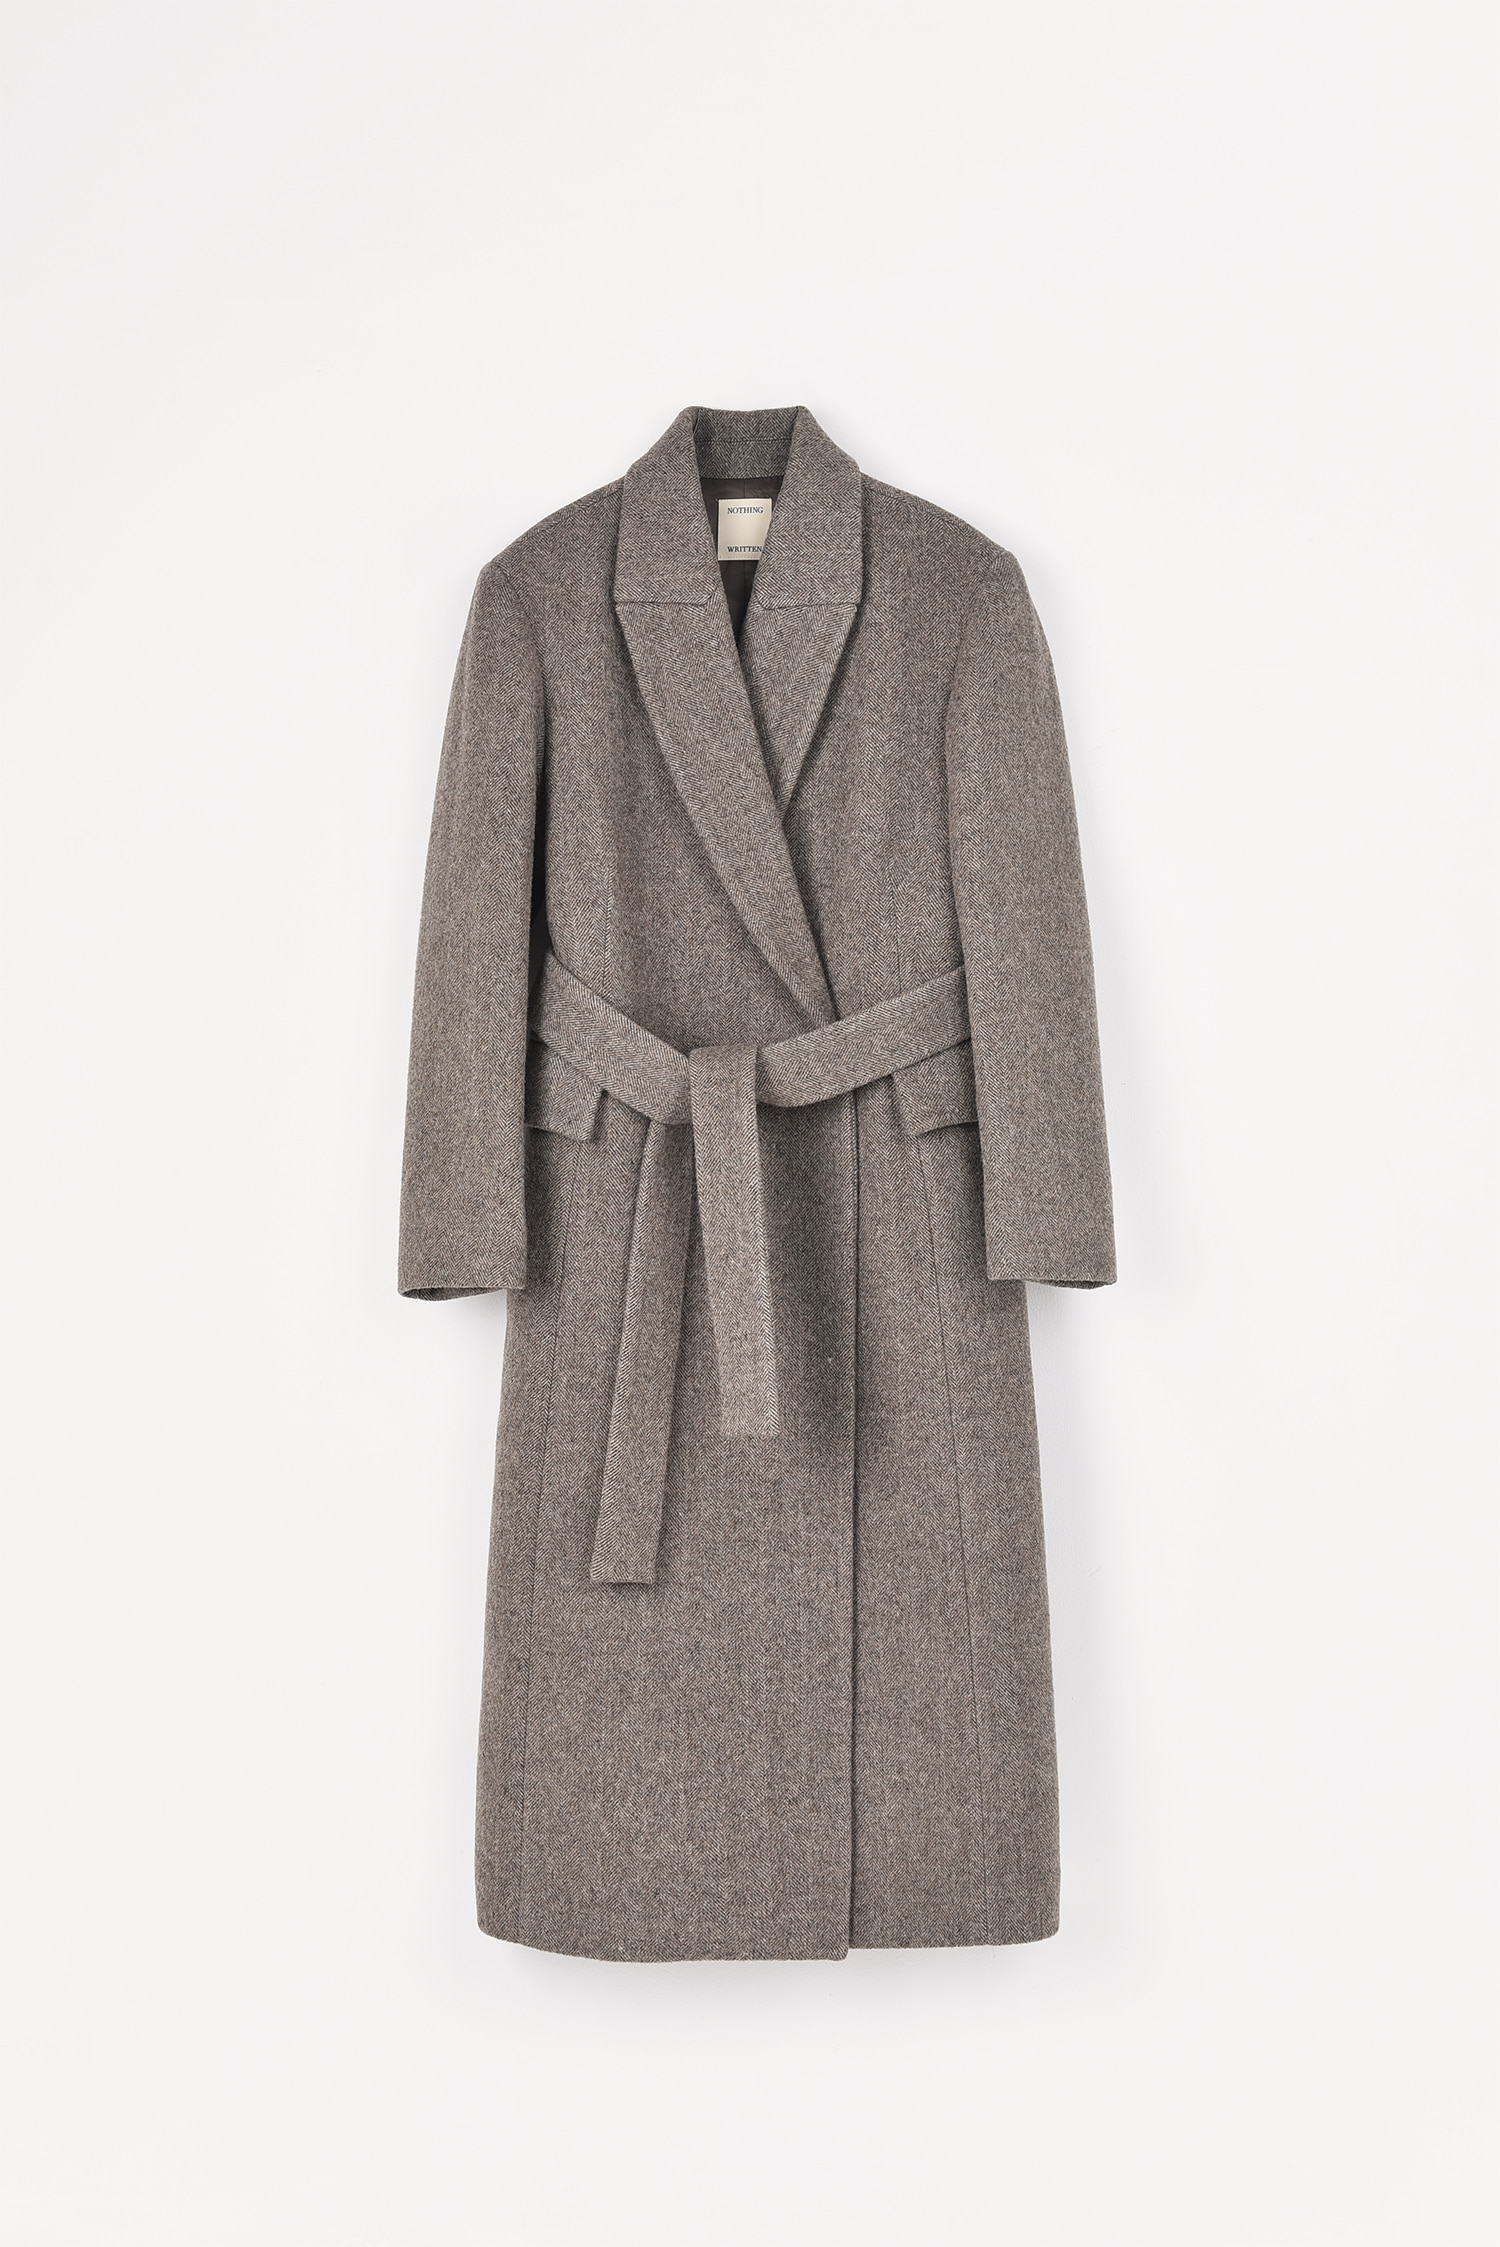 2 RE-ORDER / Belted wool-blend coat (Herringbone brown)